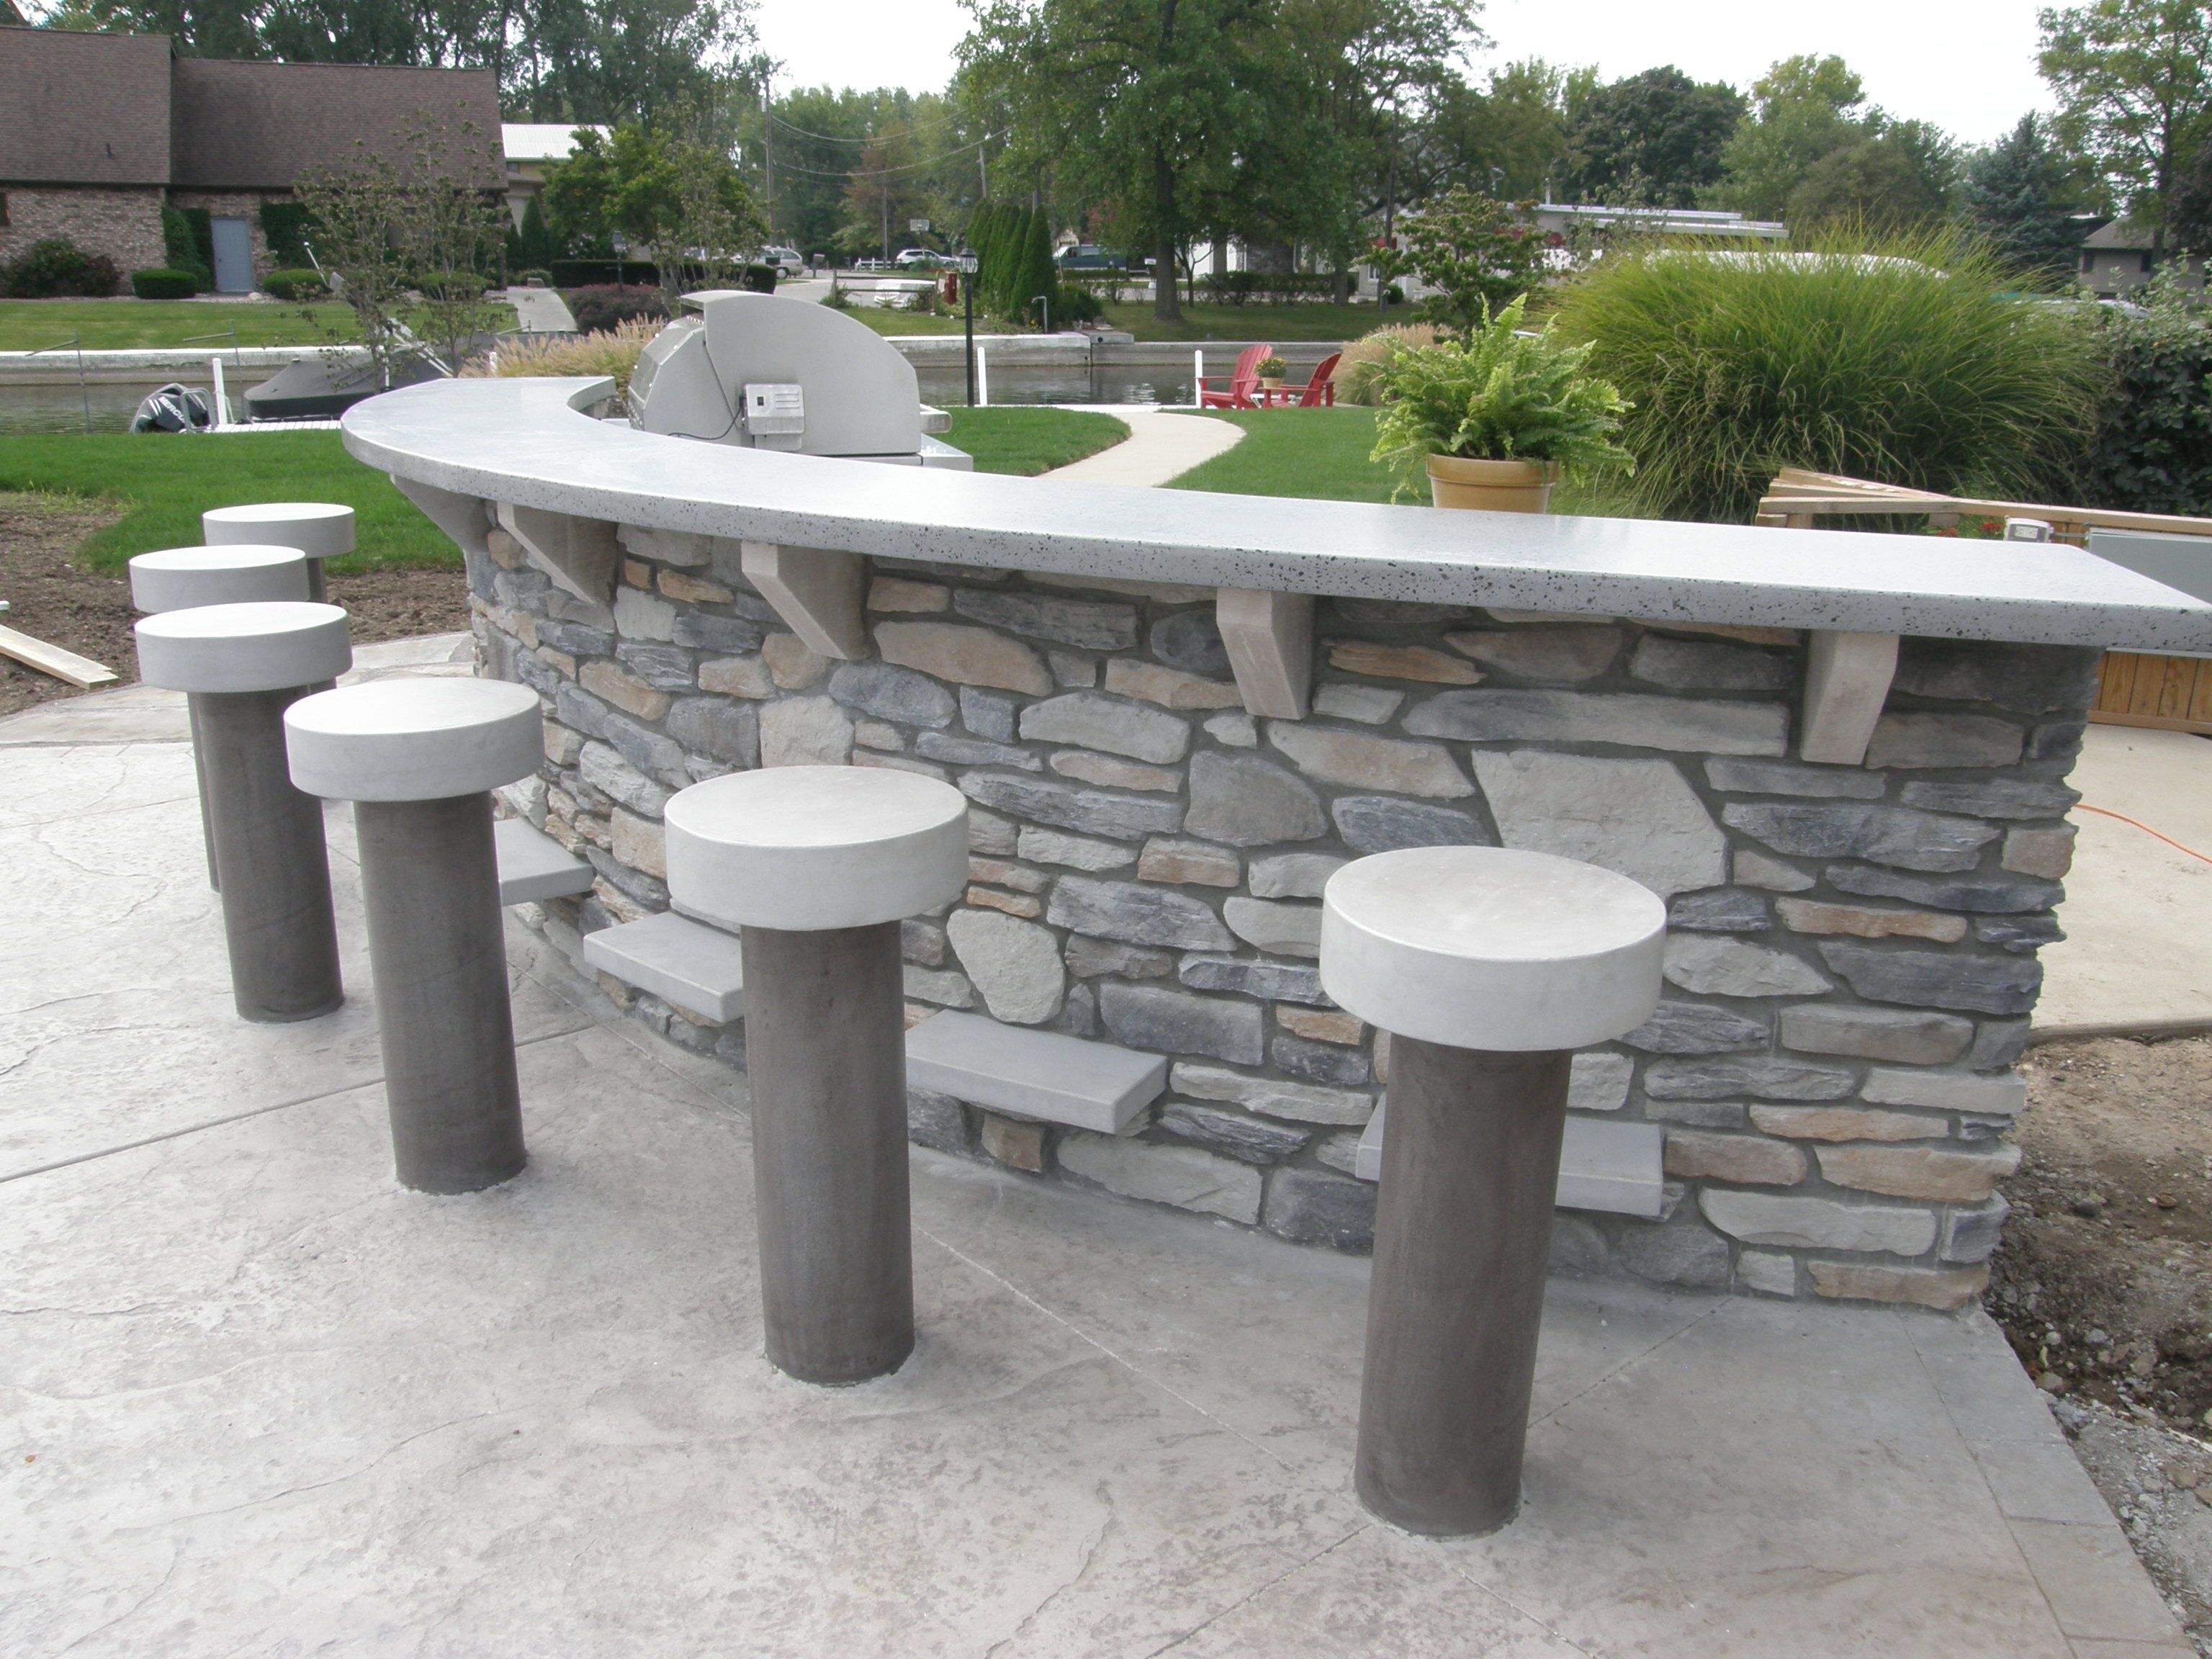 Charming A Custom Mold Was Made For This Outdoor Concrete Bar Top And Bar Stools  Were Poured In Place In Just One Pour Using SureCreteu0027s Xtreme Series  PreCast ...